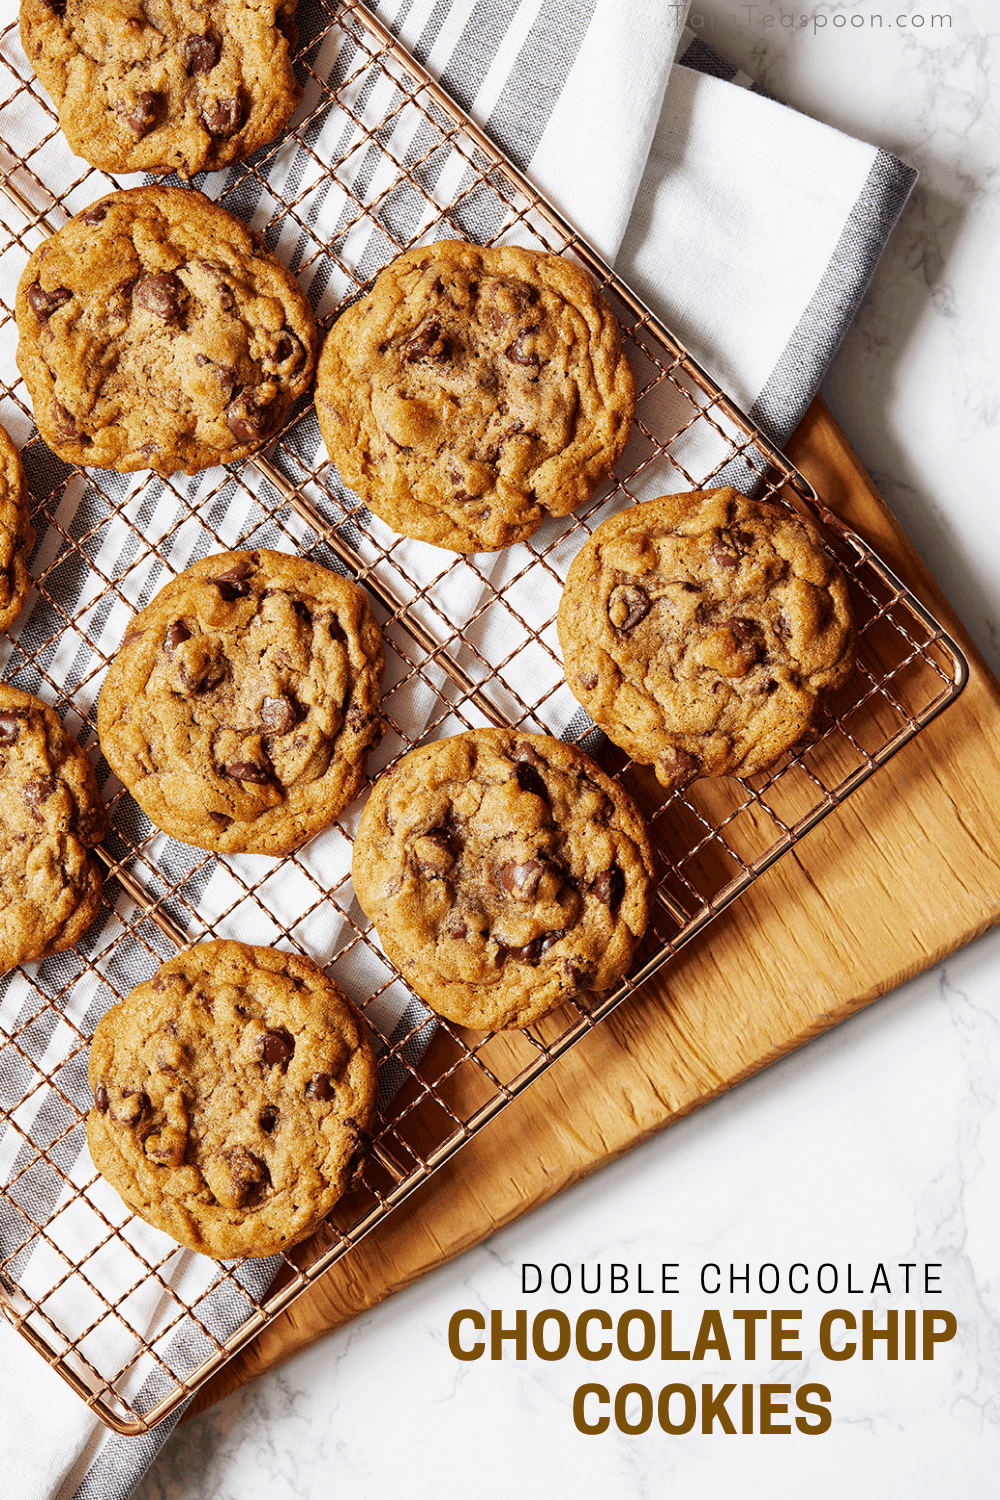 Cooling rack of chocolate chip cookies